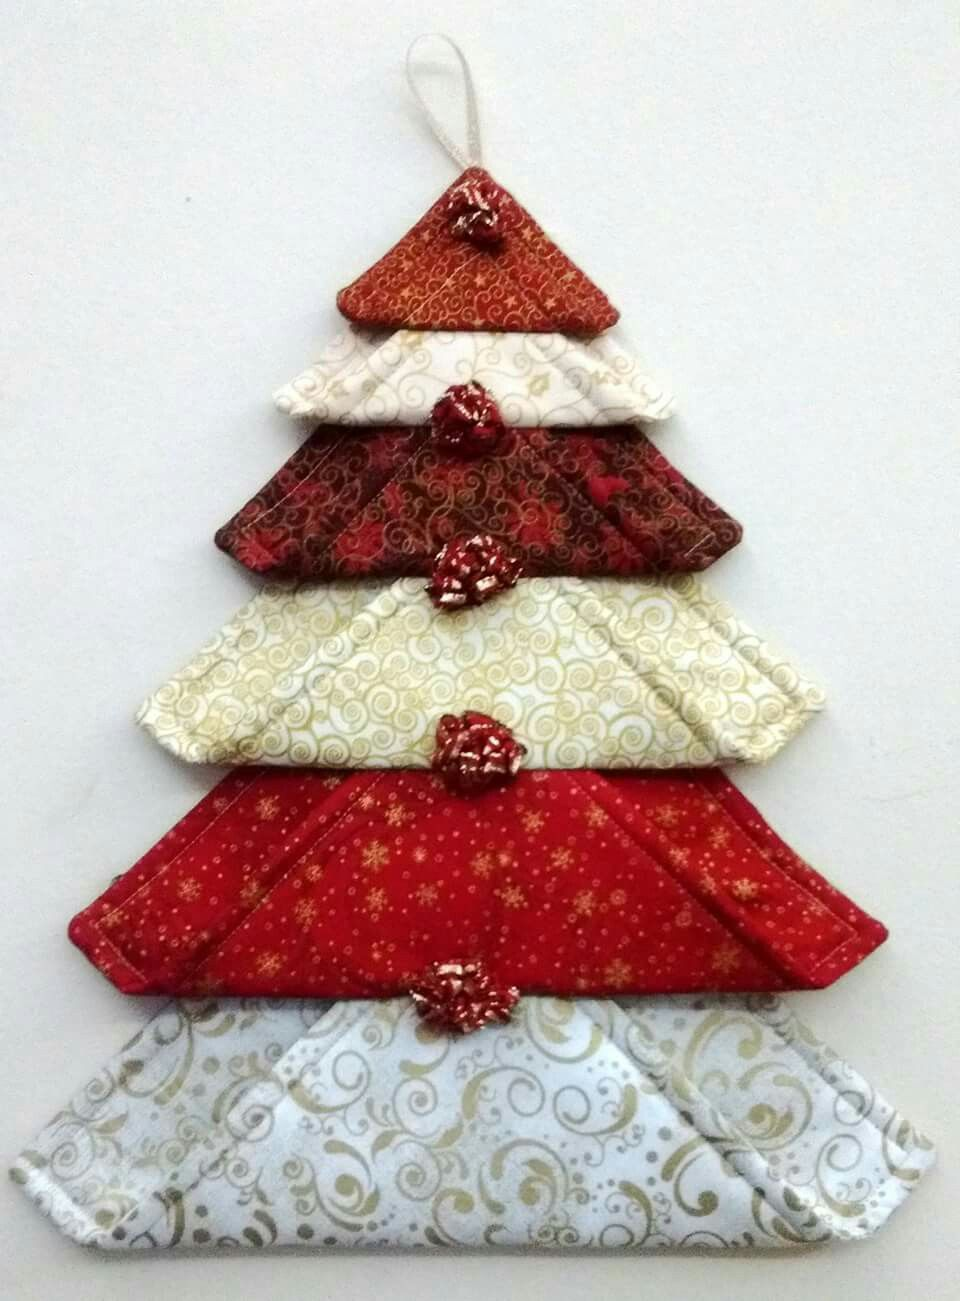 Fabric Blocks In Different Sizes To Make A Tree Decoration Would Be Lovely In Green Or Othe Fabric Christmas Ornaments Fabric Christmas Trees Christmas Fabric